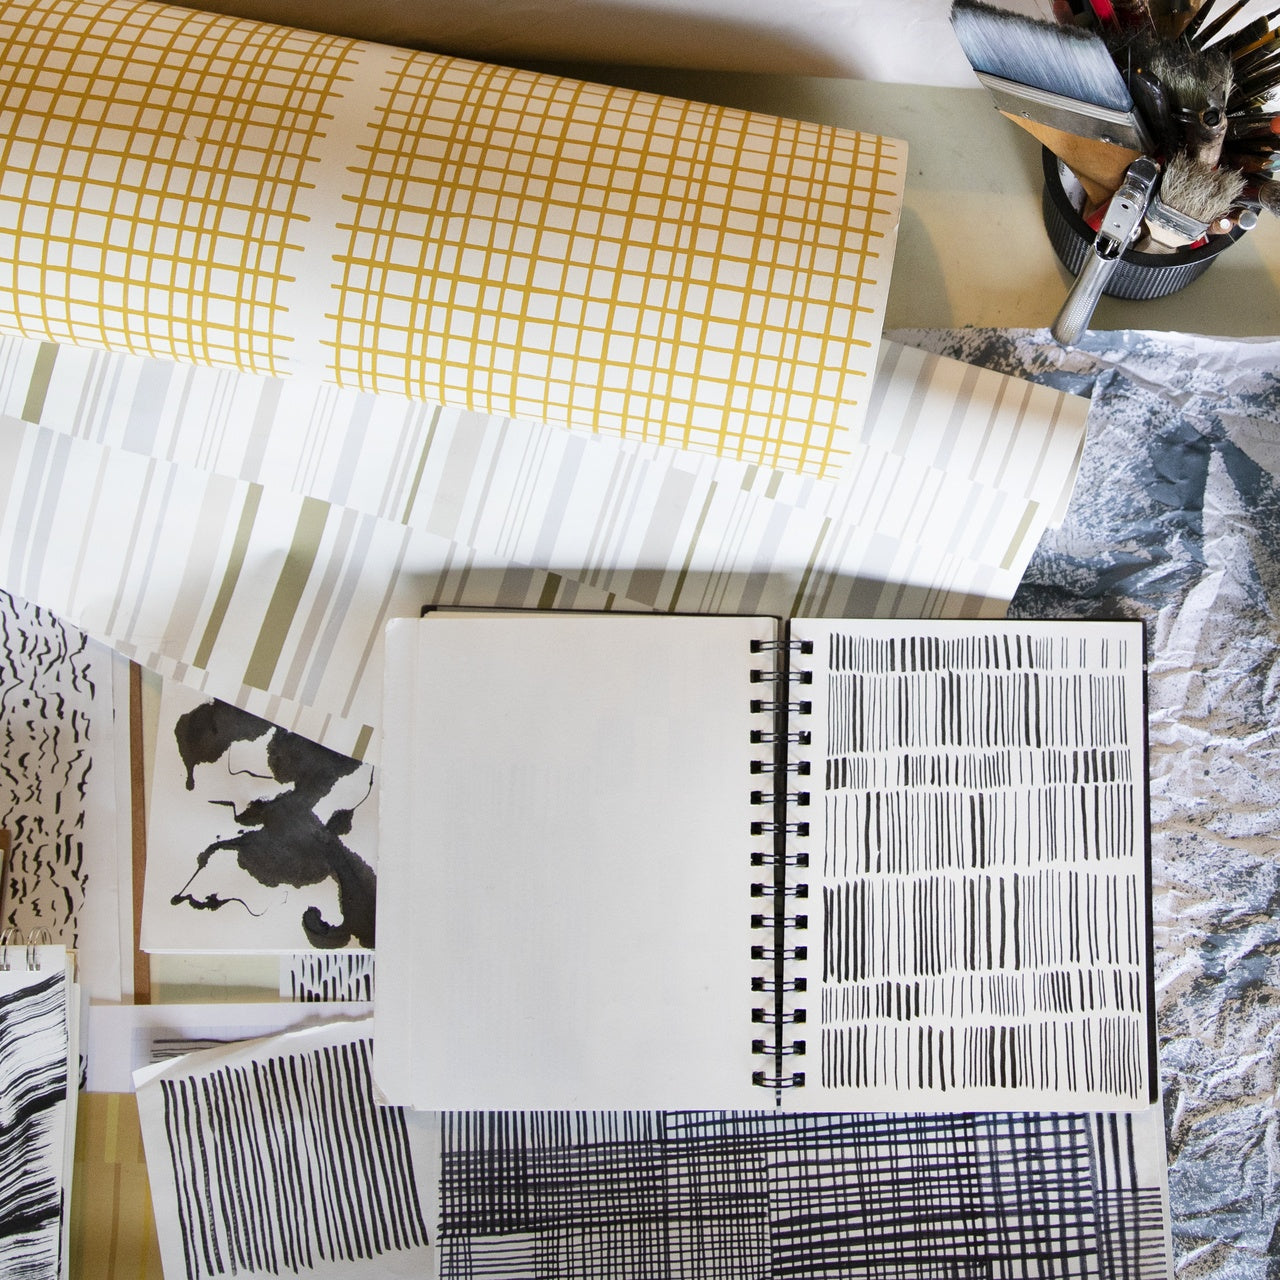 Jennifer Stady of Laundry Studio works on her wallpaper designs in her Portland studio   Meet the designers behind the new Schoolhouse + Hygge & West wallpaper collection